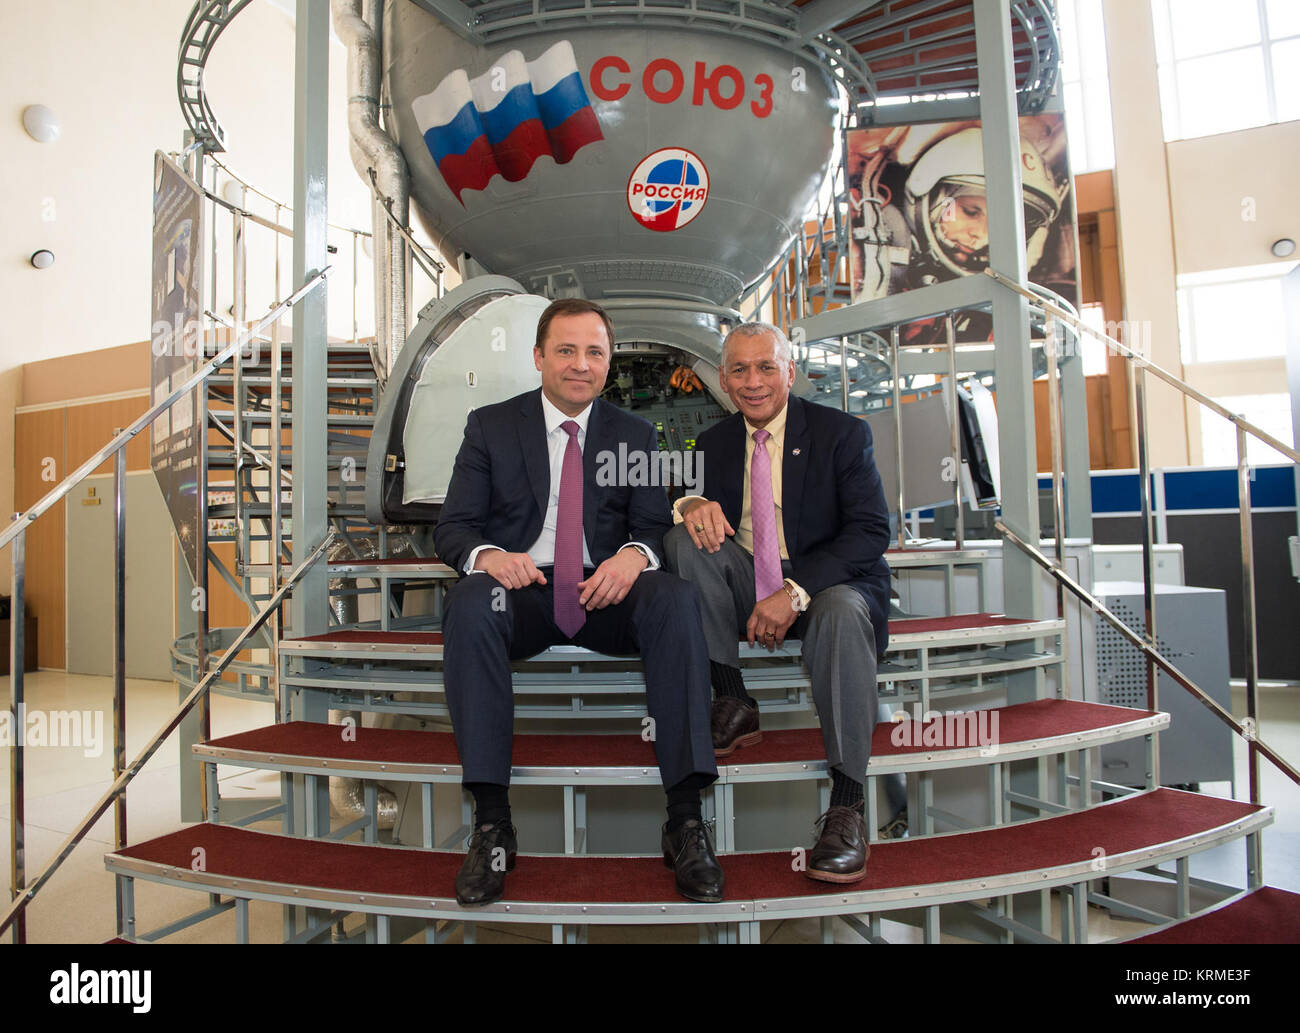 Head of Roscosmos, Igor Komarov, left, poses for a photo in front of a Soyuz spacecraft with NASA Administrator - Stock Image